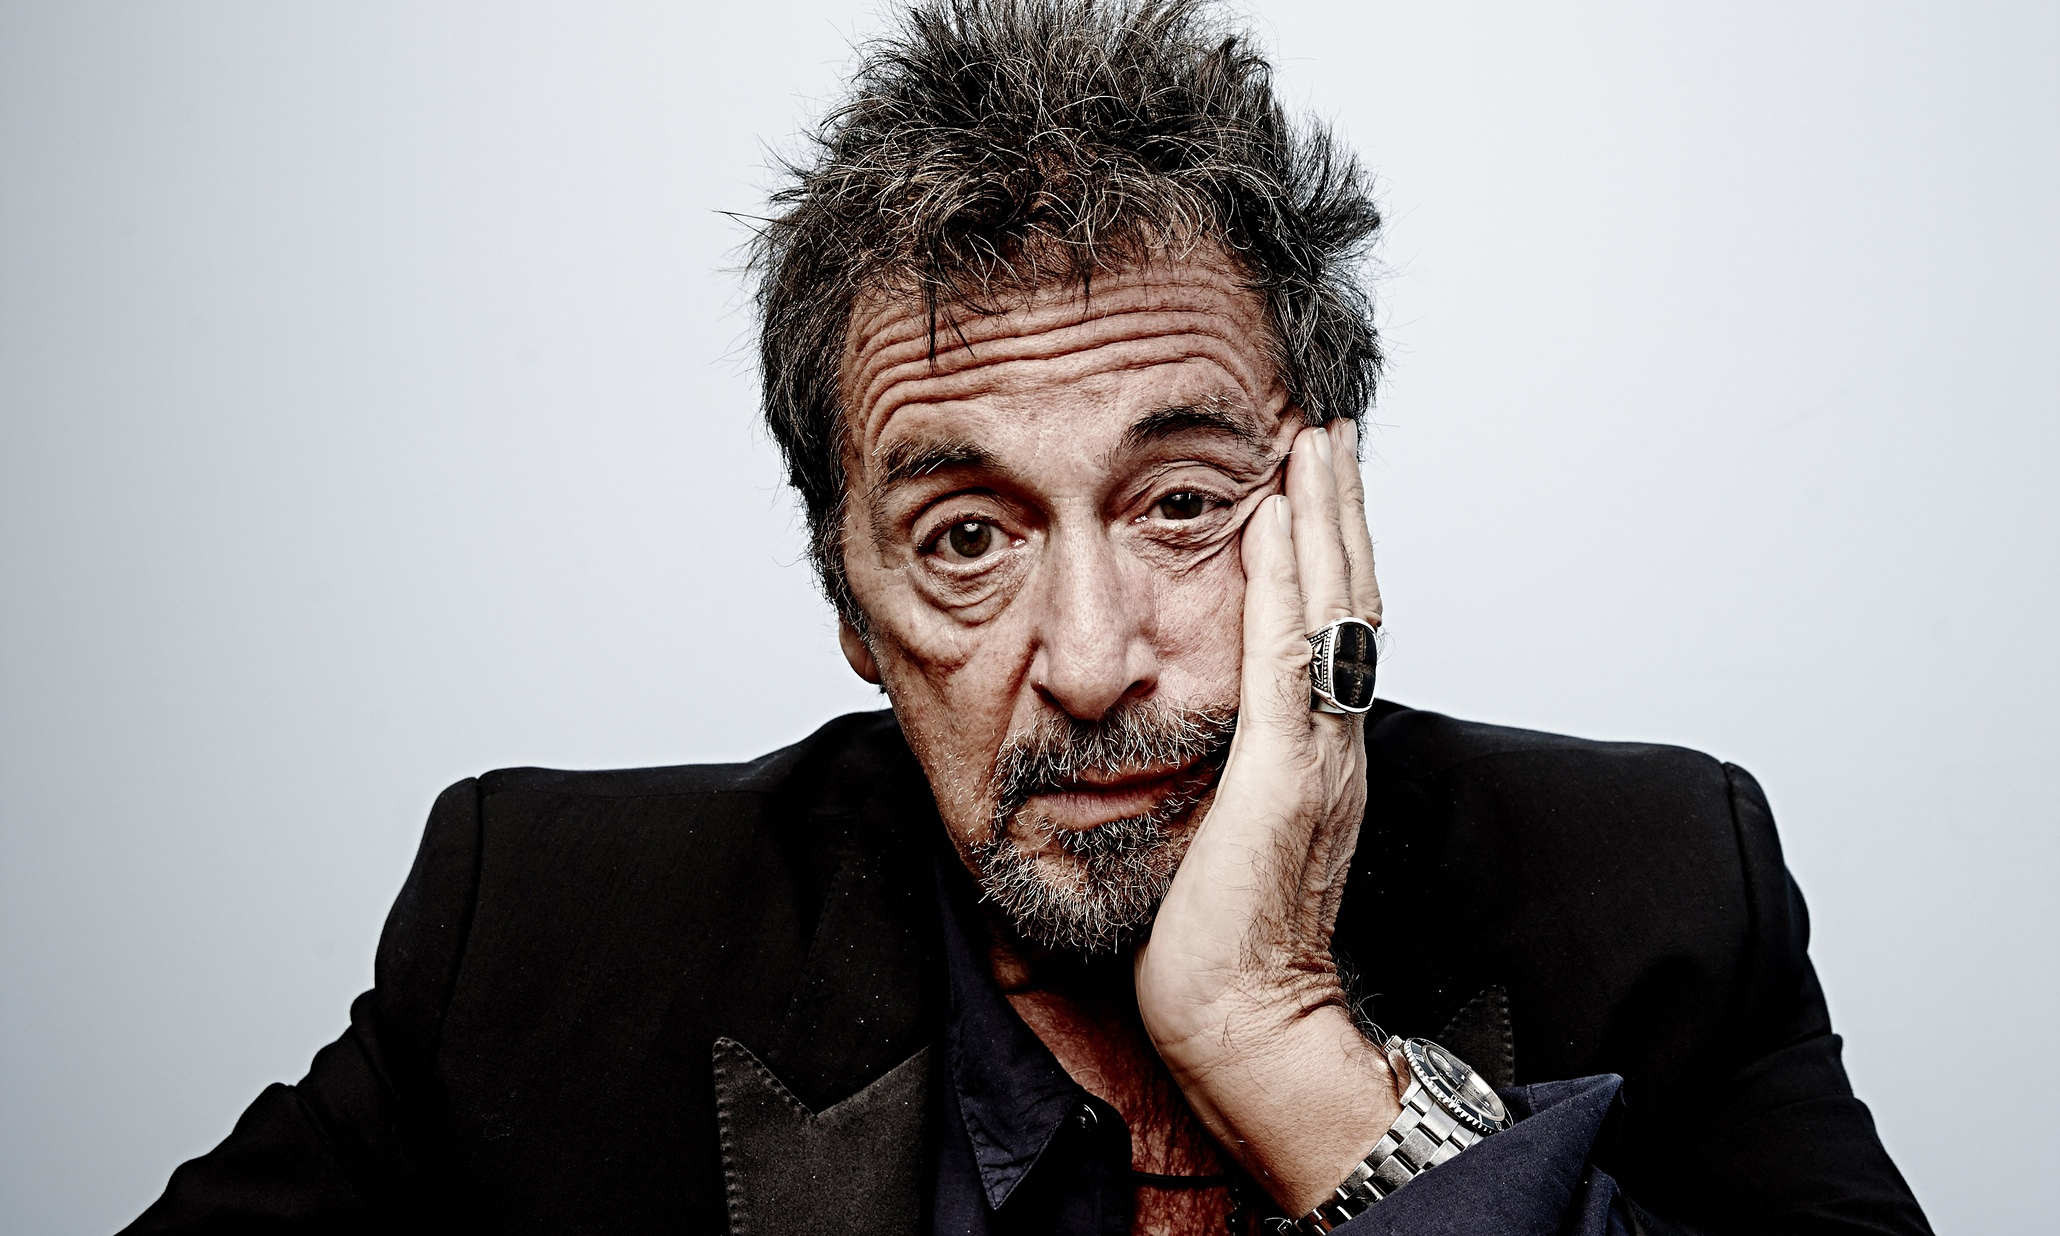 Al Pacino: 'It's never been about money. I was often unemployed ... Al Pacino